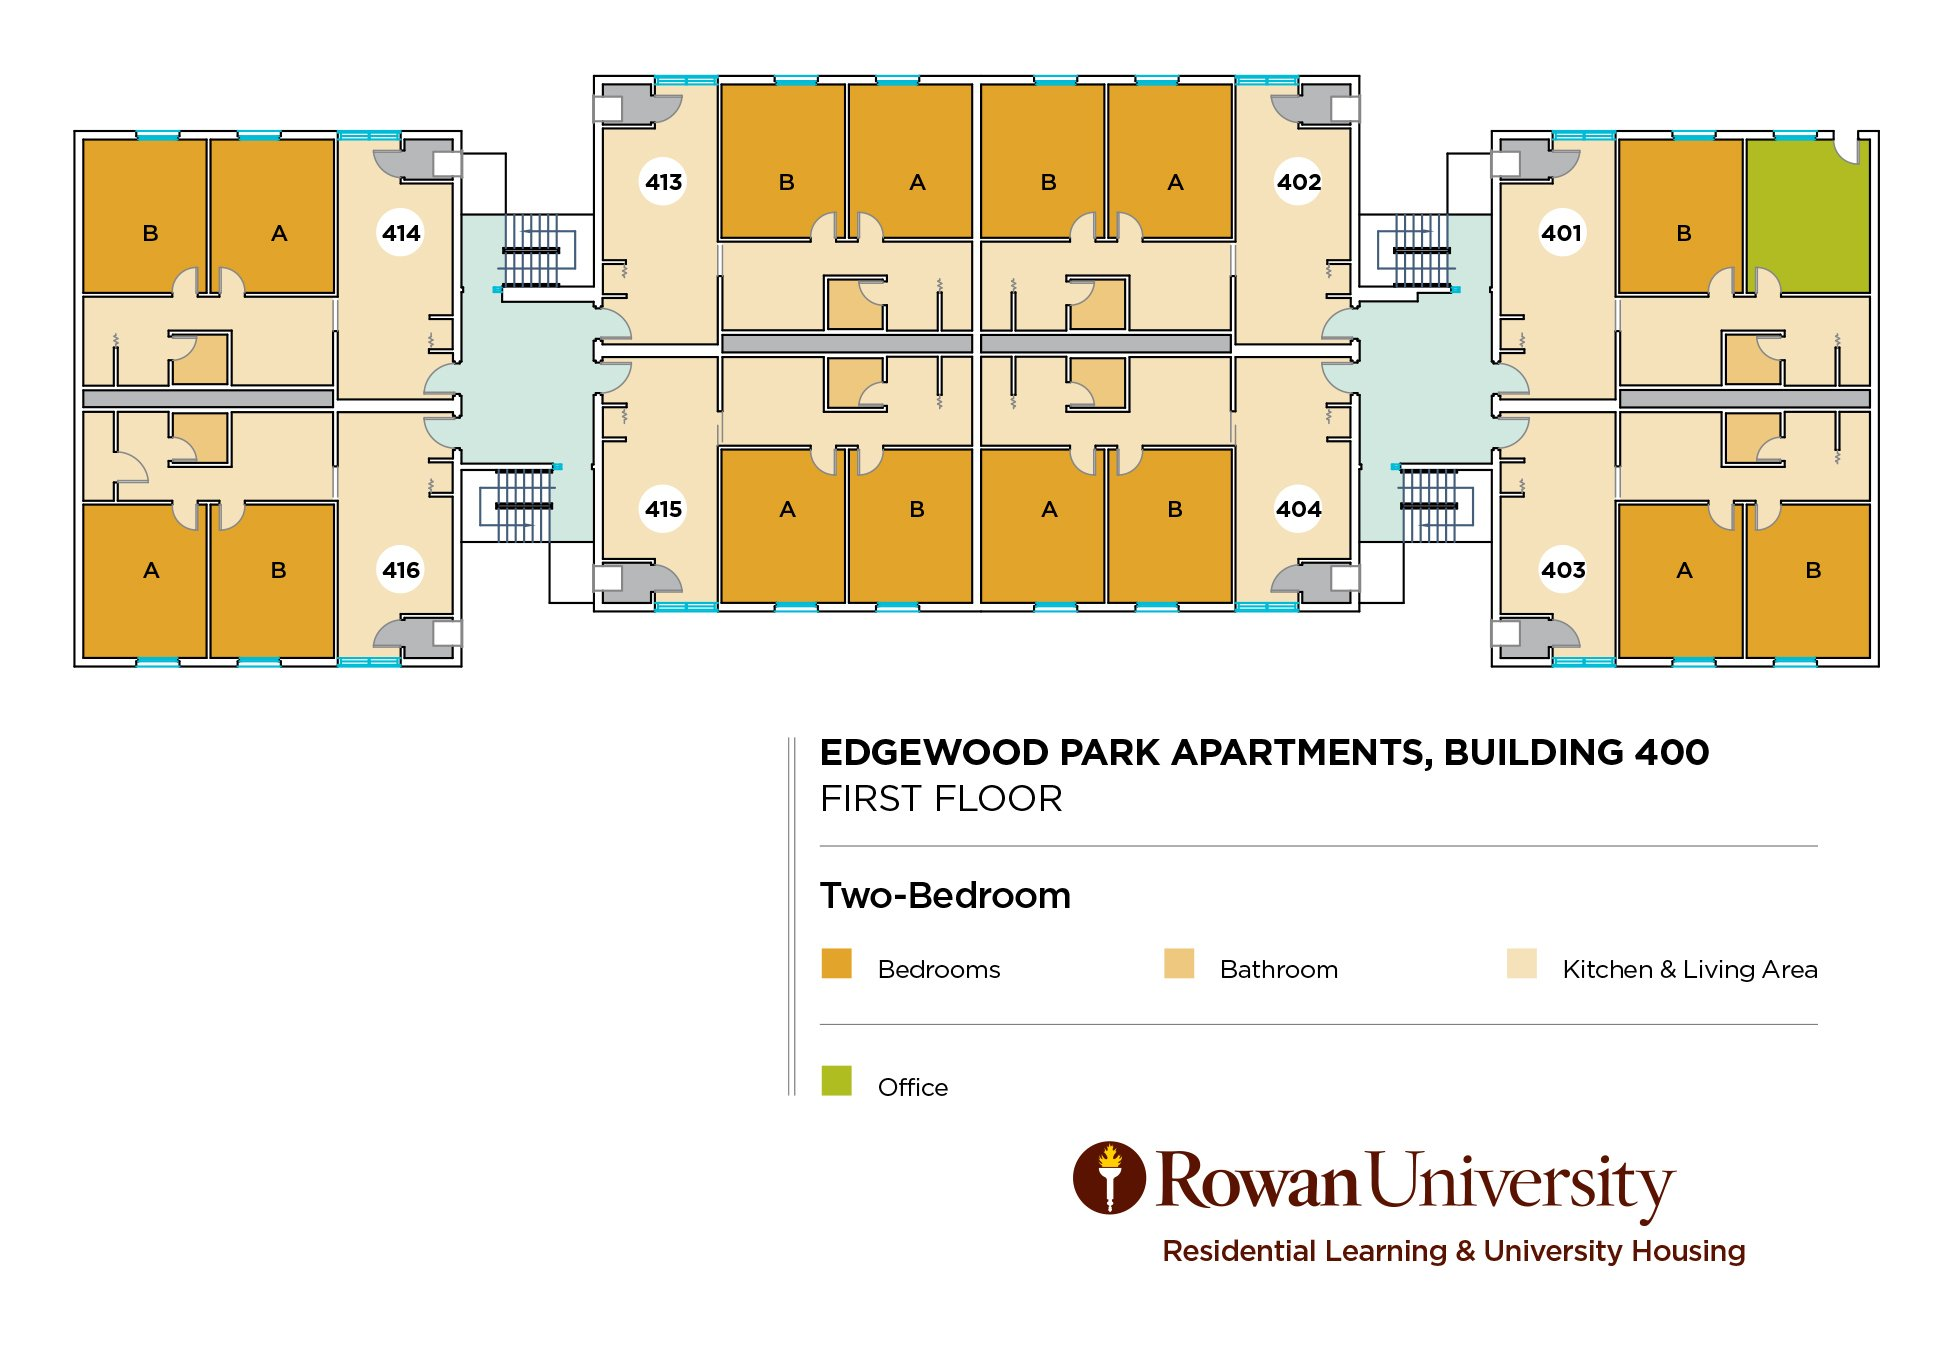 Edgewood Park Apartments Residential Learning And